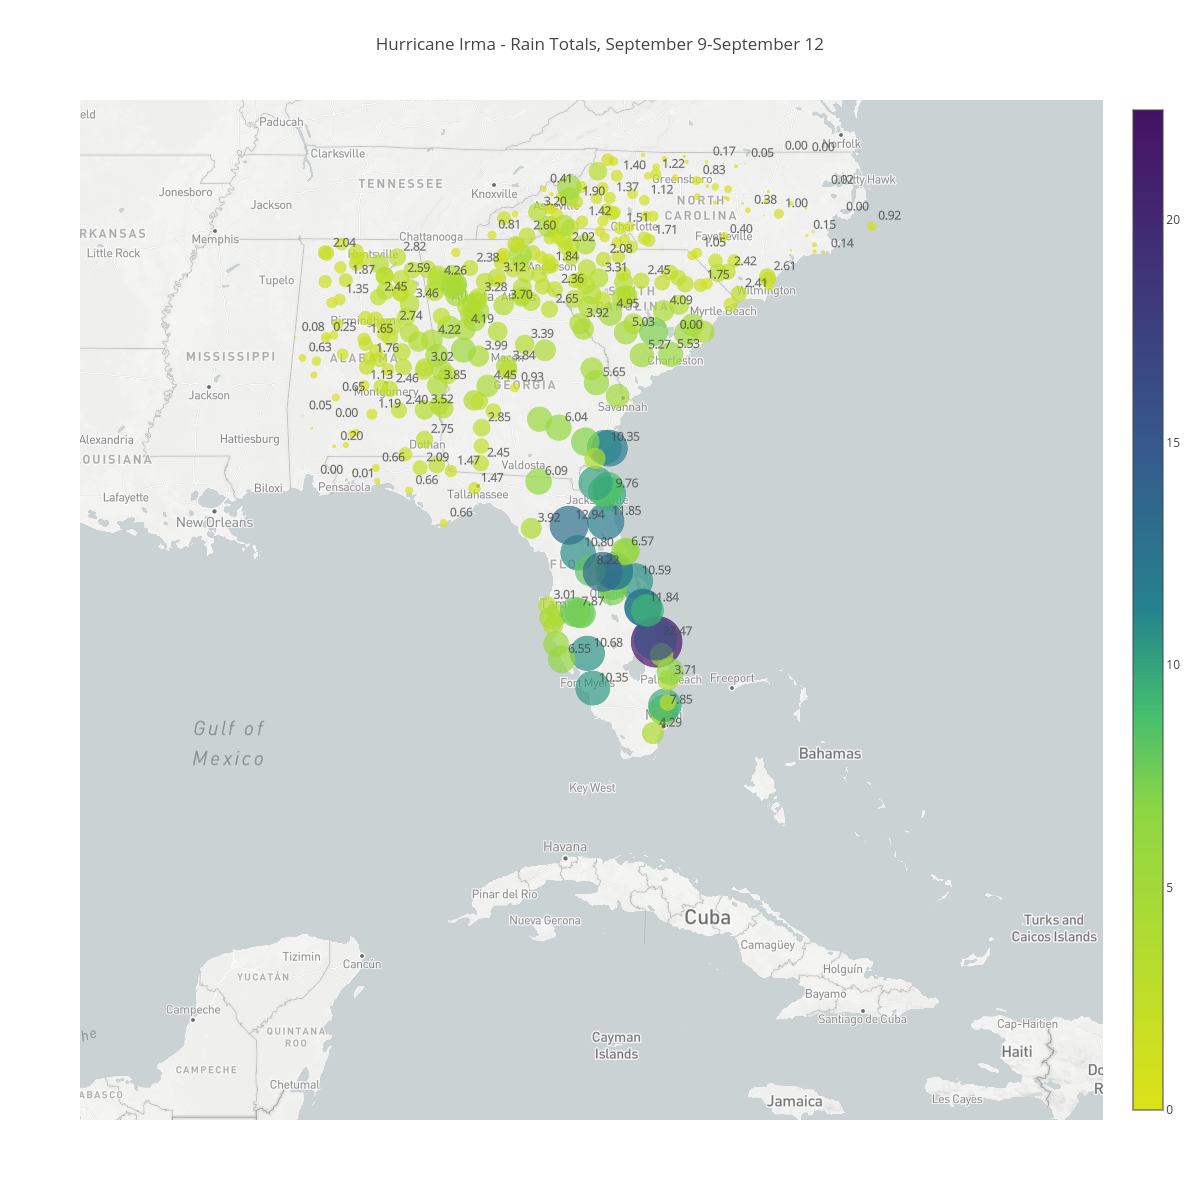 Hurricane Irma - Rain Totals, September 9-September 12 | scattermapbox made by Bigdata153 | plotly